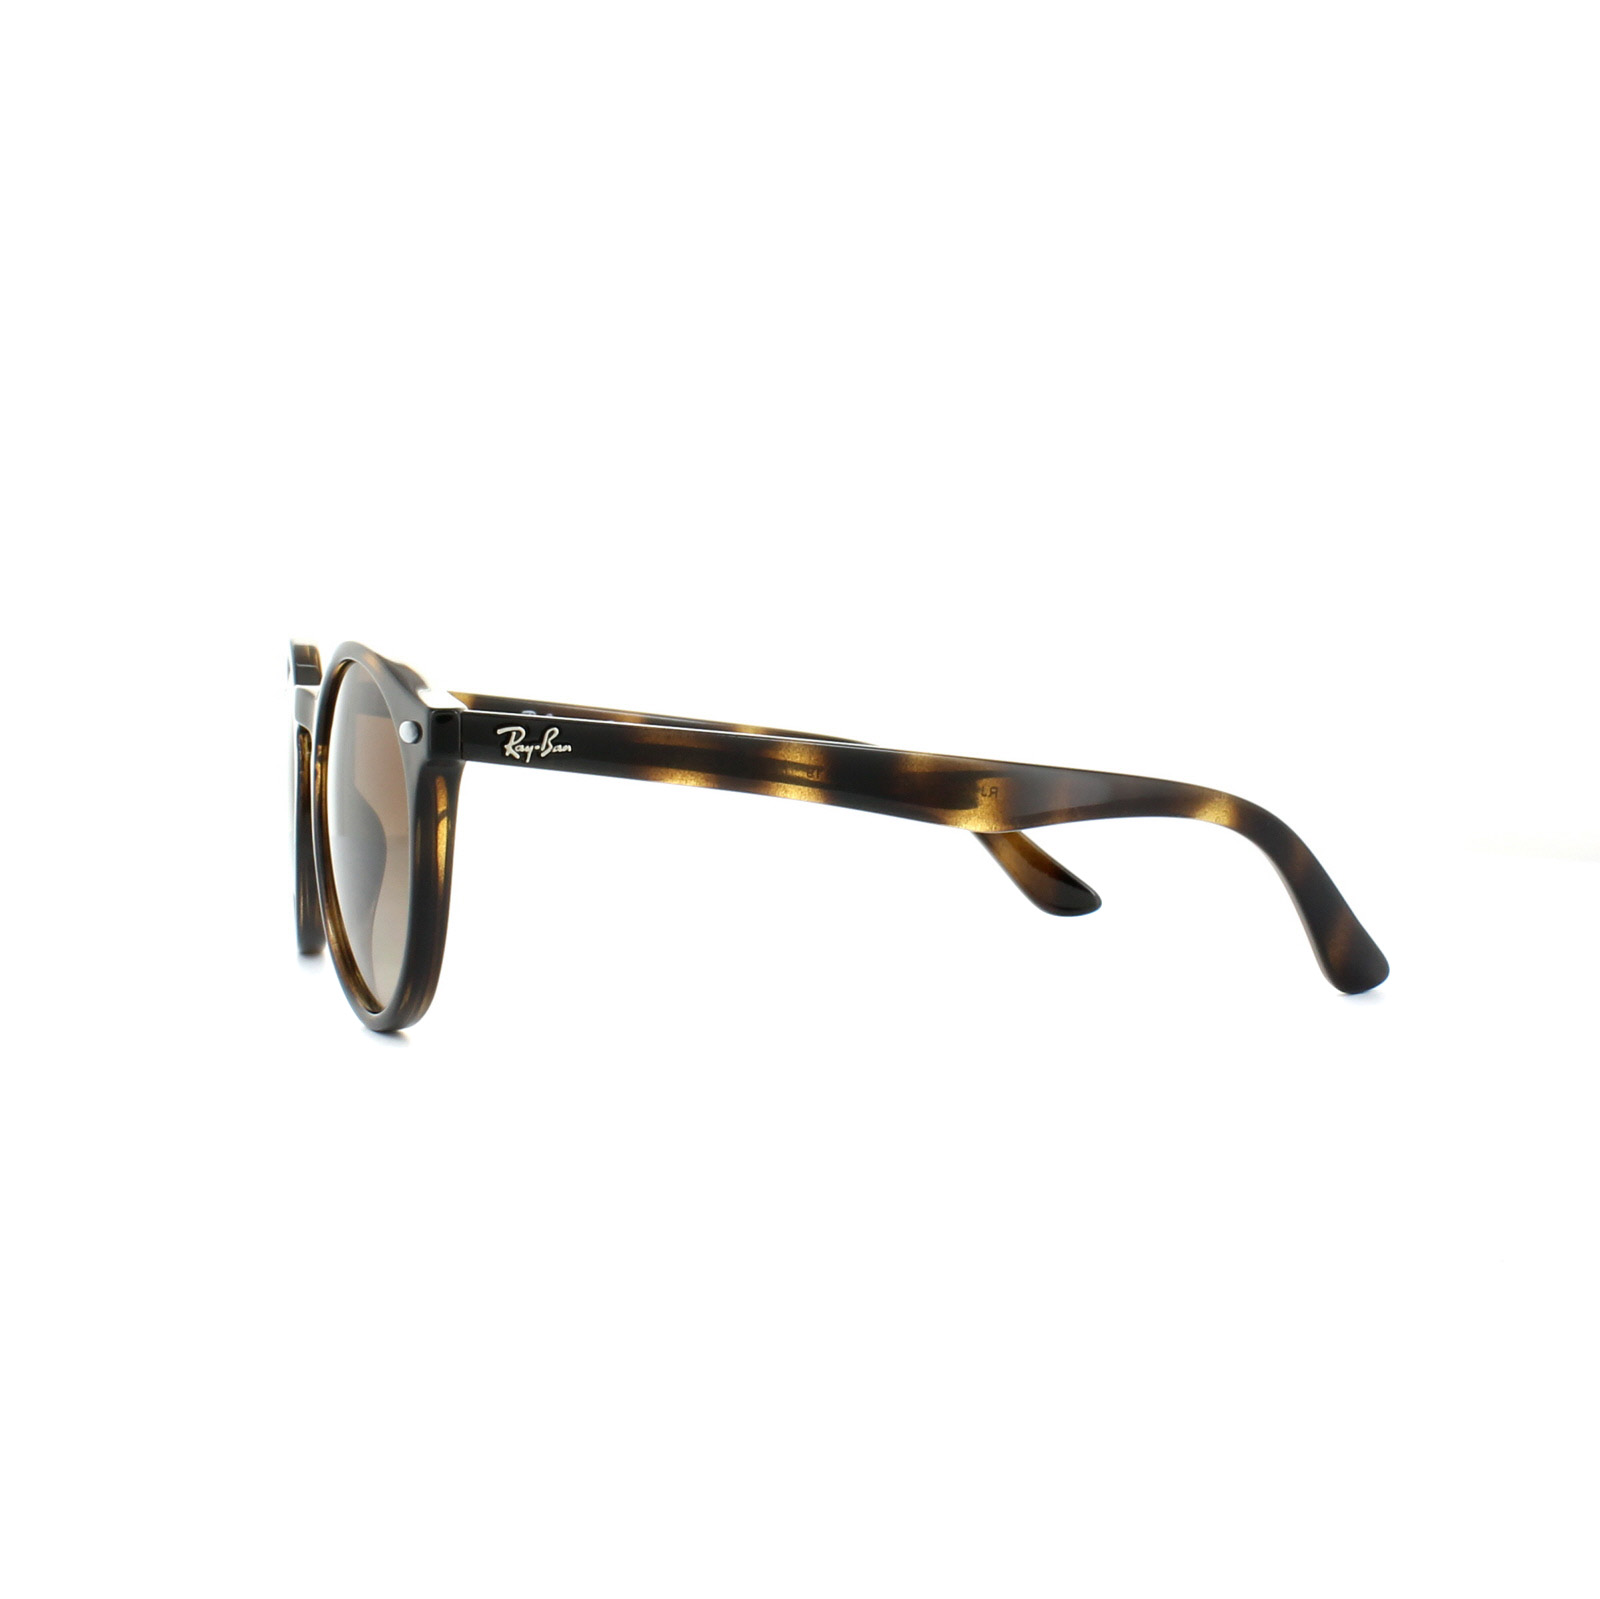 d0e7a50f062 Sentinel Ray-Ban Junior Sunglasses 9064 152 13 Tortoise Brown Gradient.  Sentinel Thumbnail 3